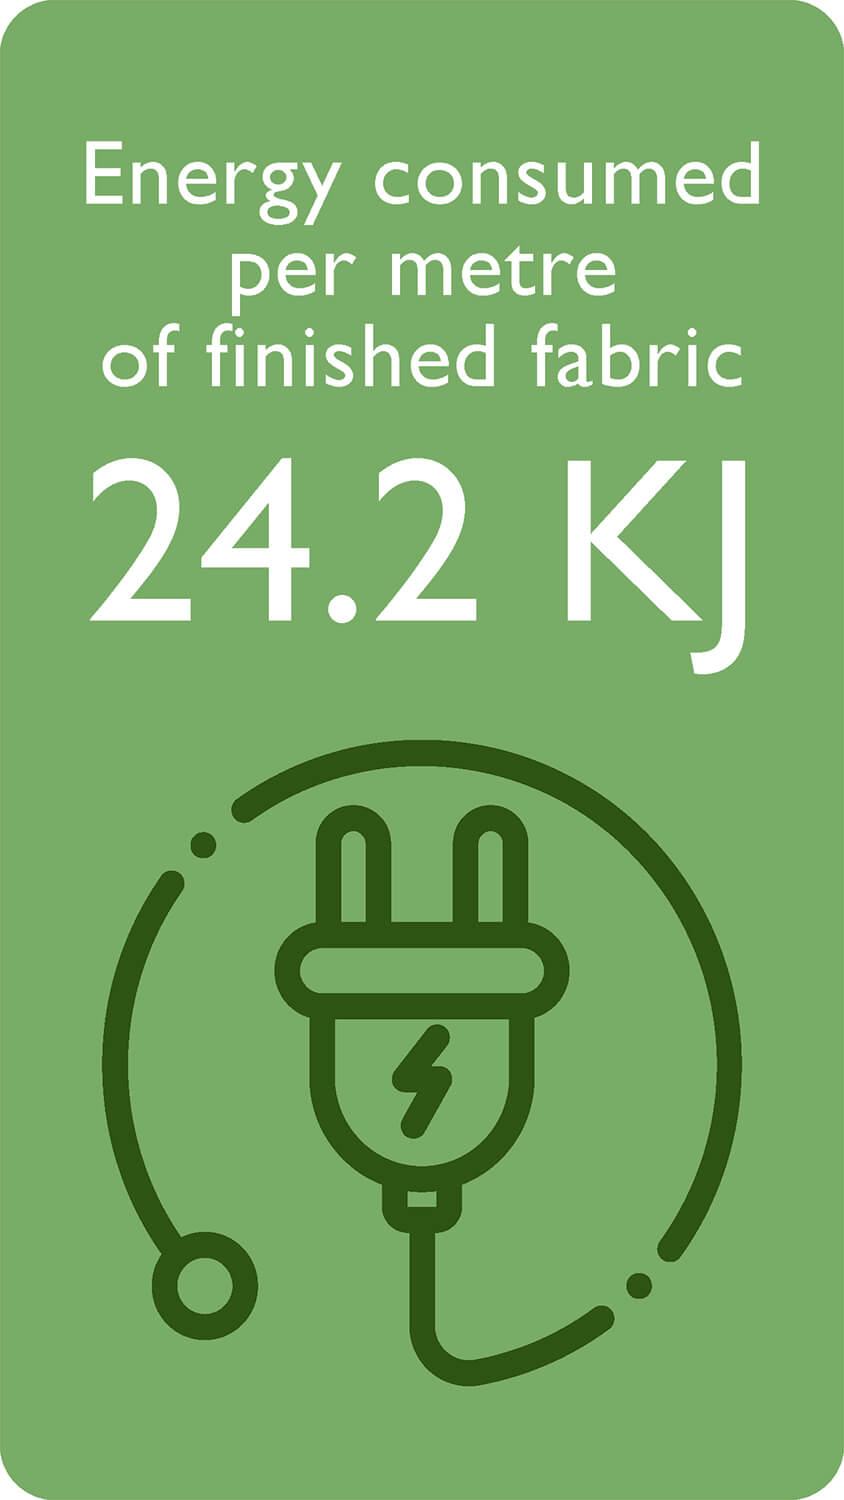 Energy for one metre of finished fabric